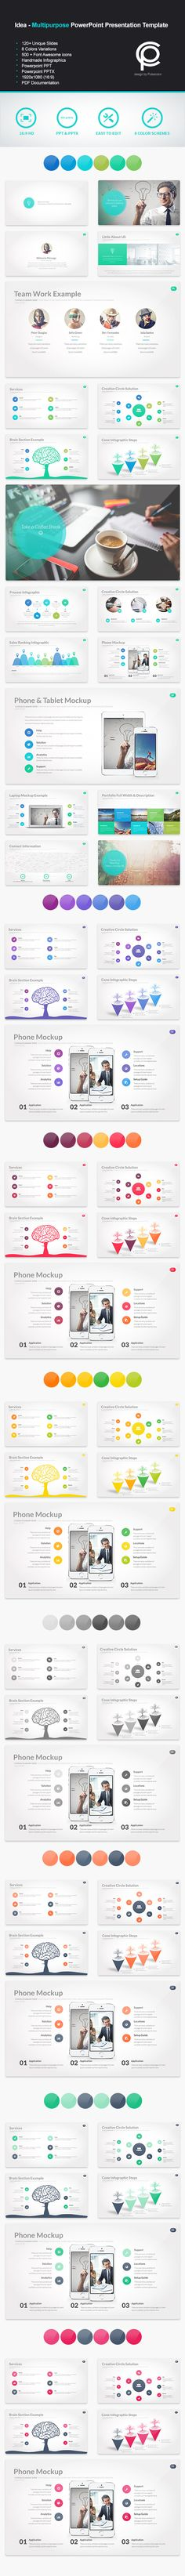 Officepro Multipurpose Powerpoint Template  Template